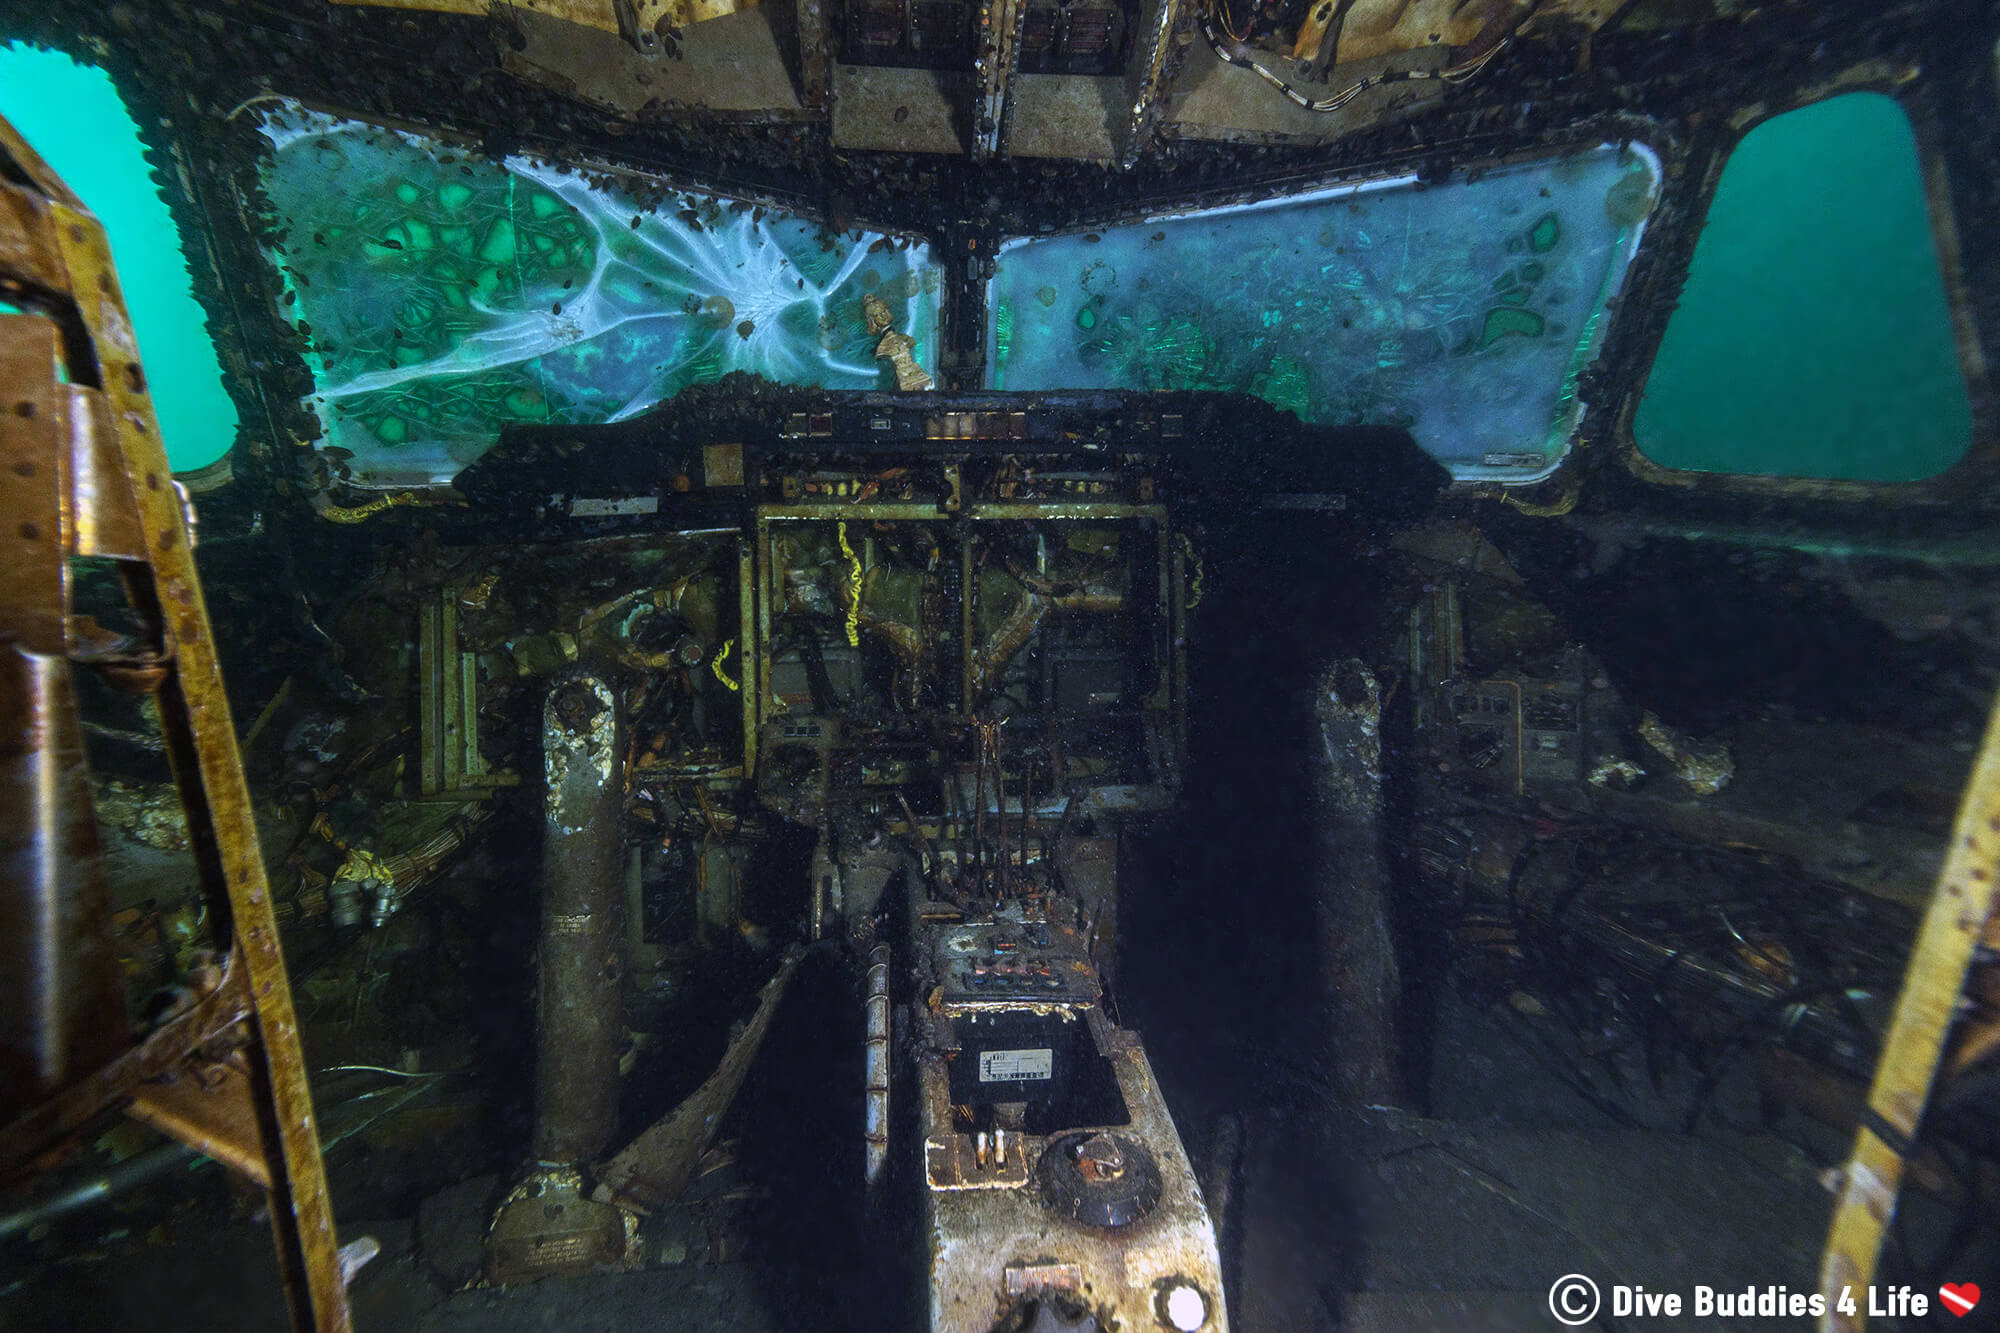 The Inside Cockpit Of A Sunken Airplane In Vobster Quay, England, United Kingdom